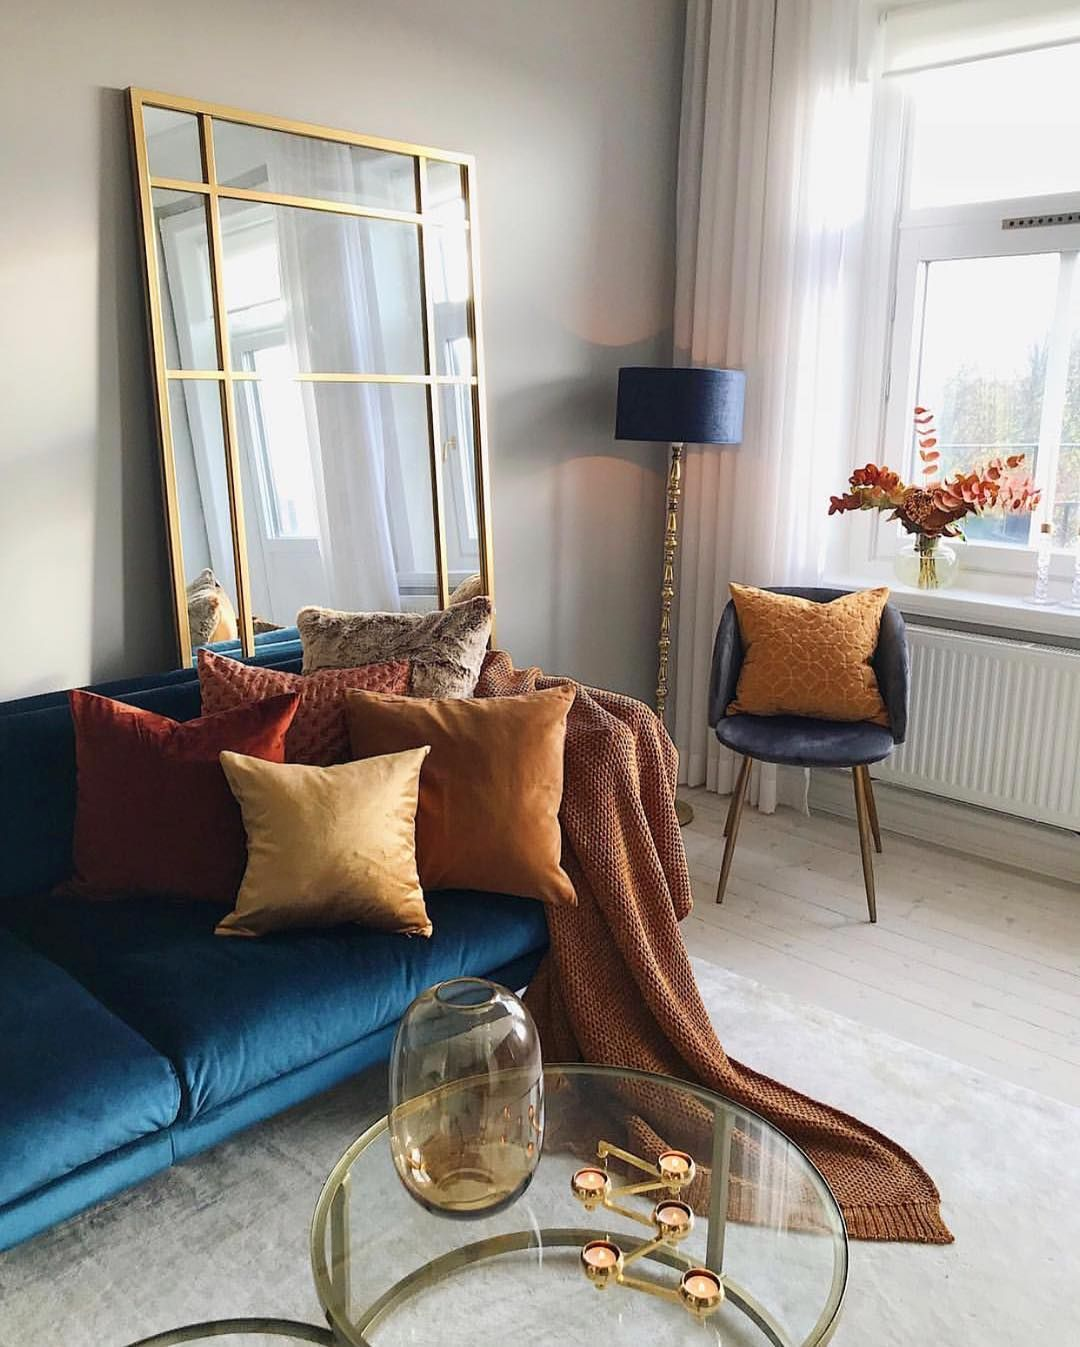 Confident Living On Instagram Beautiful Fall Interior Just Look At The Spirit Iron Wall Mirror By Nordal Confiden Interior Autumn Interior Iron Wall